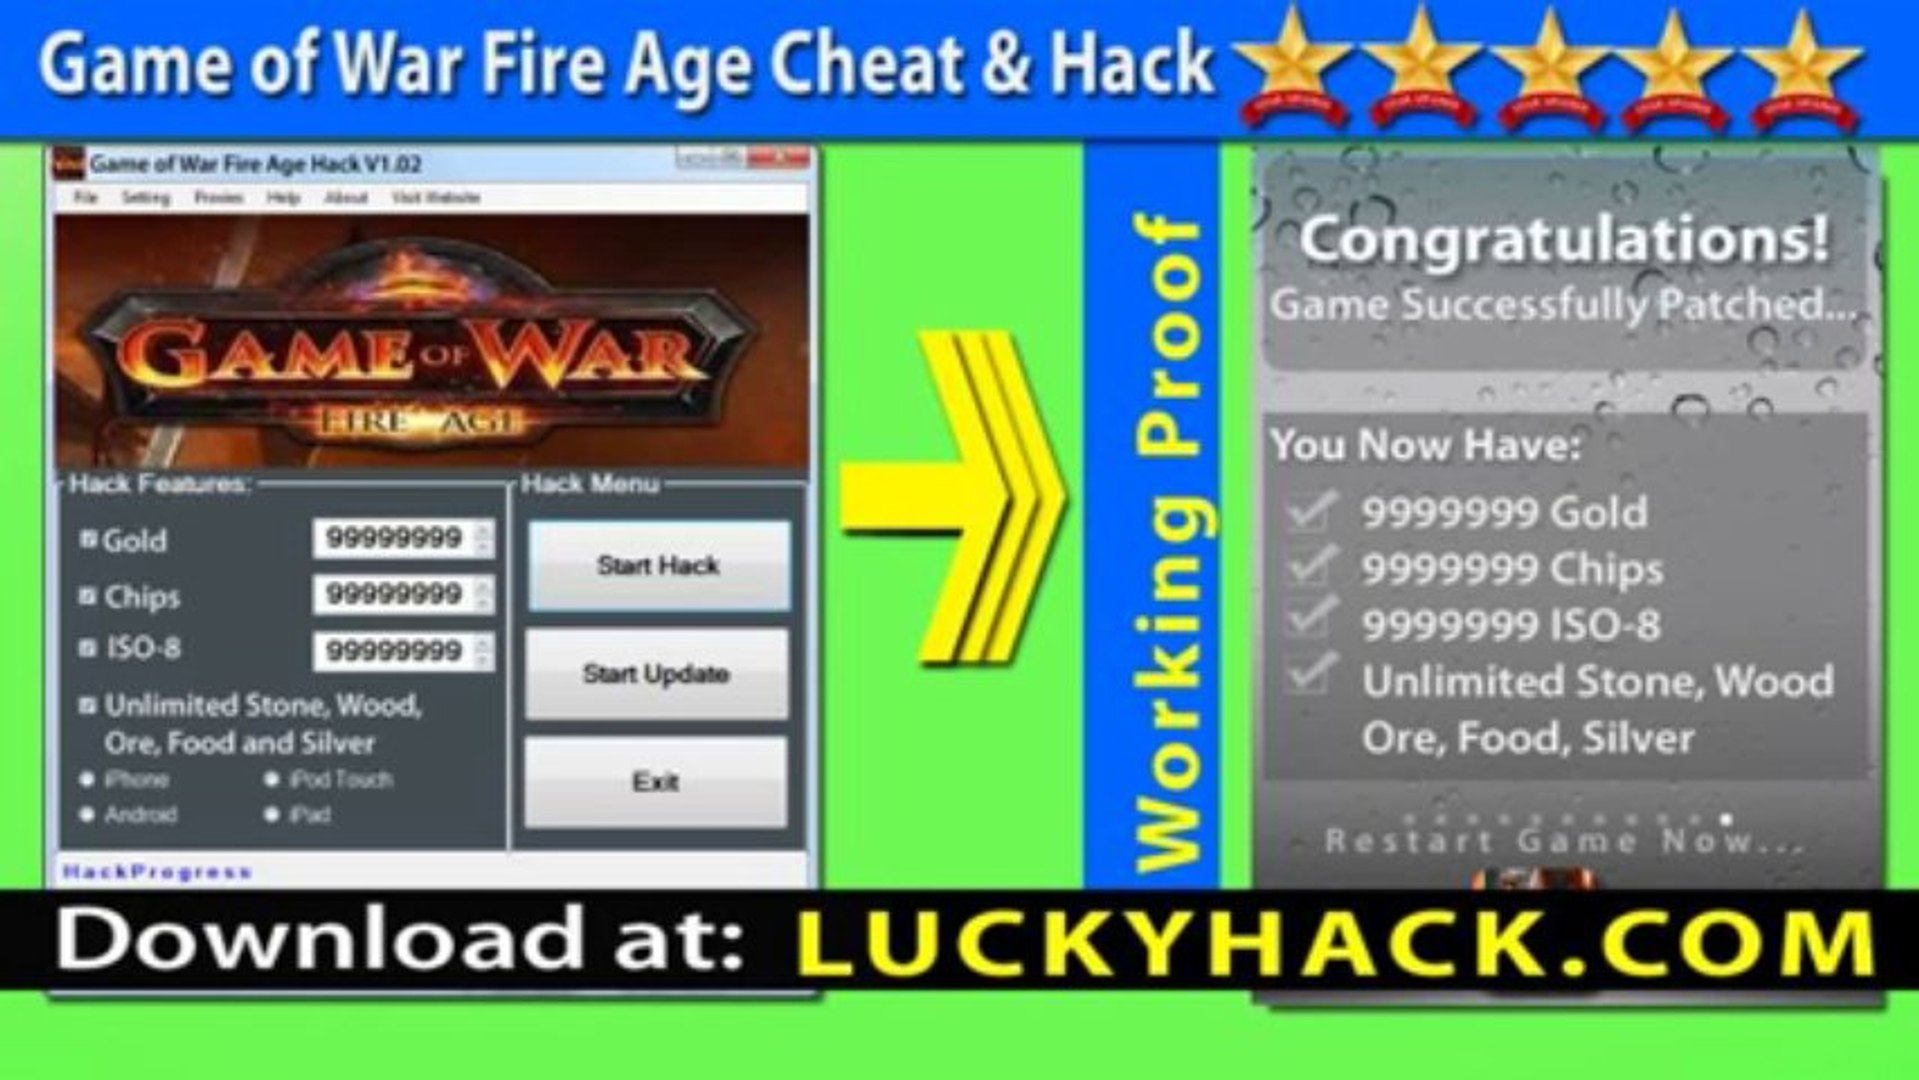 Game of War Fire Age Cheat for unlimited Chips and Gold iOs - V1.02 Game of War Telecharger